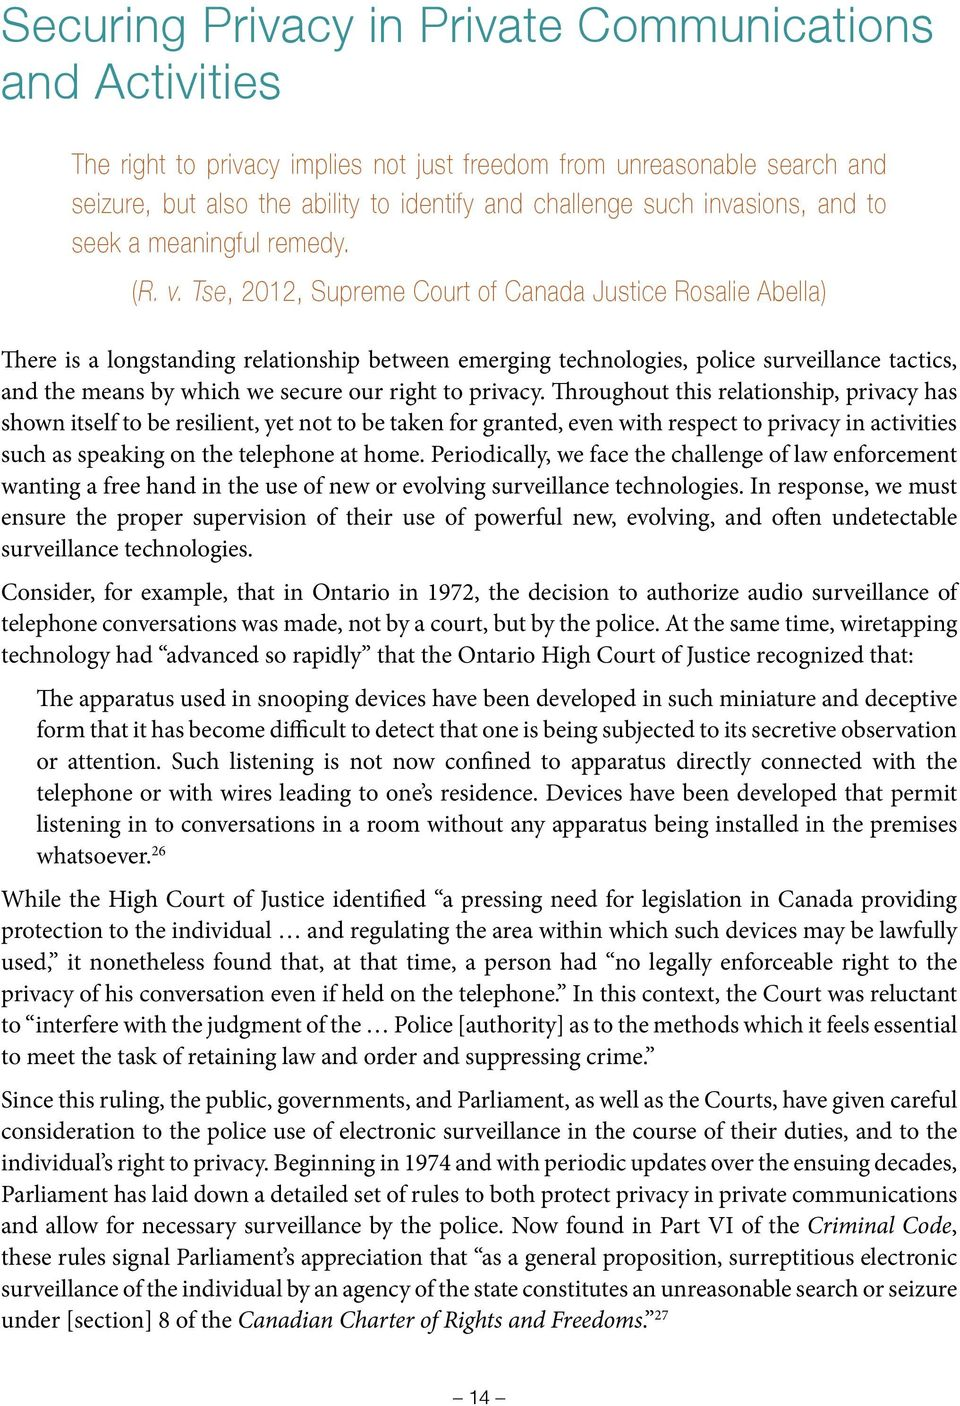 Tse, 2012, Supreme Court of Canada Justice Rosalie Abella) There is a longstanding relationship between emerging technologies, police surveillance tactics, and the means by which we secure our right